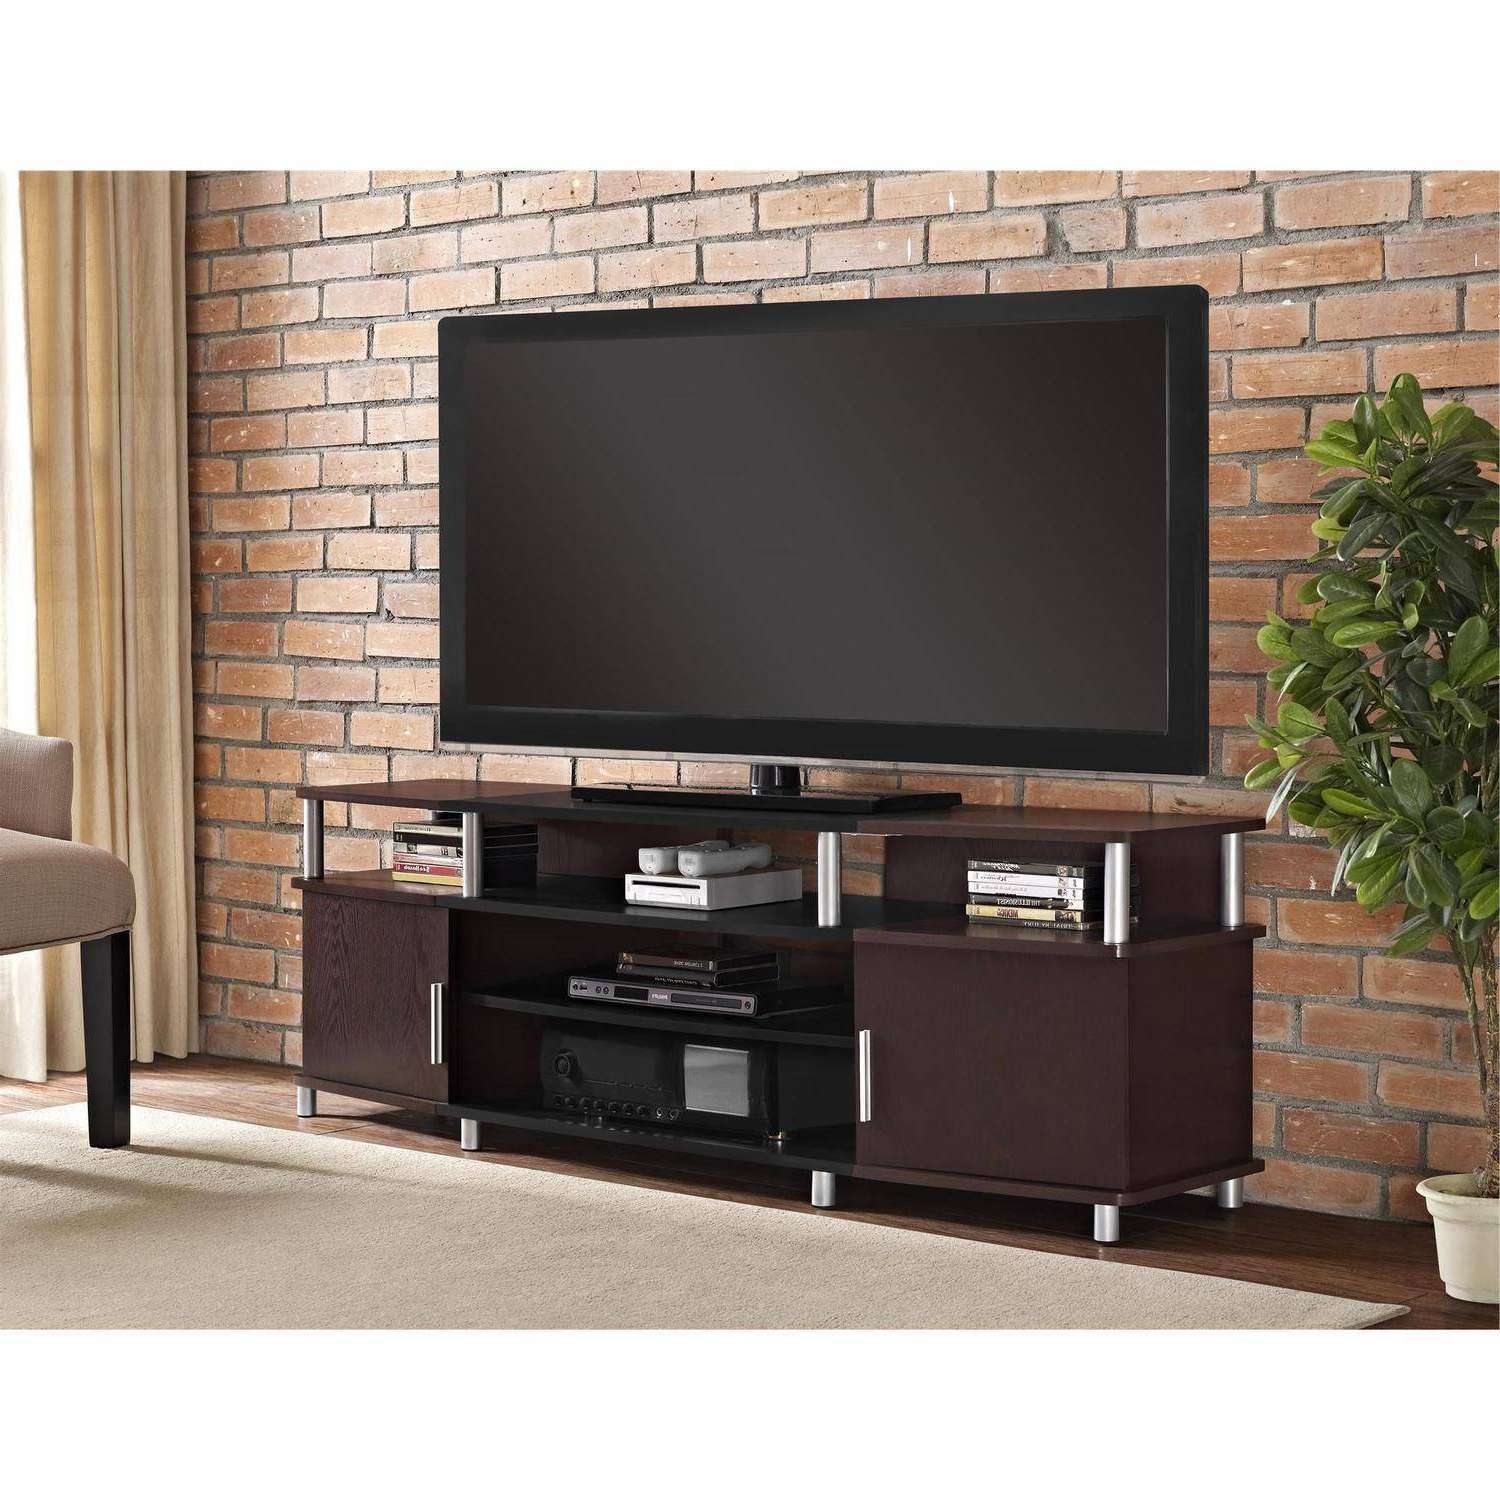 Bedroom Design : Amazing Long Tv Stand White Corner Tv Unit 60 Pertaining To Corner 60 Inch Tv Stands (View 12 of 15)